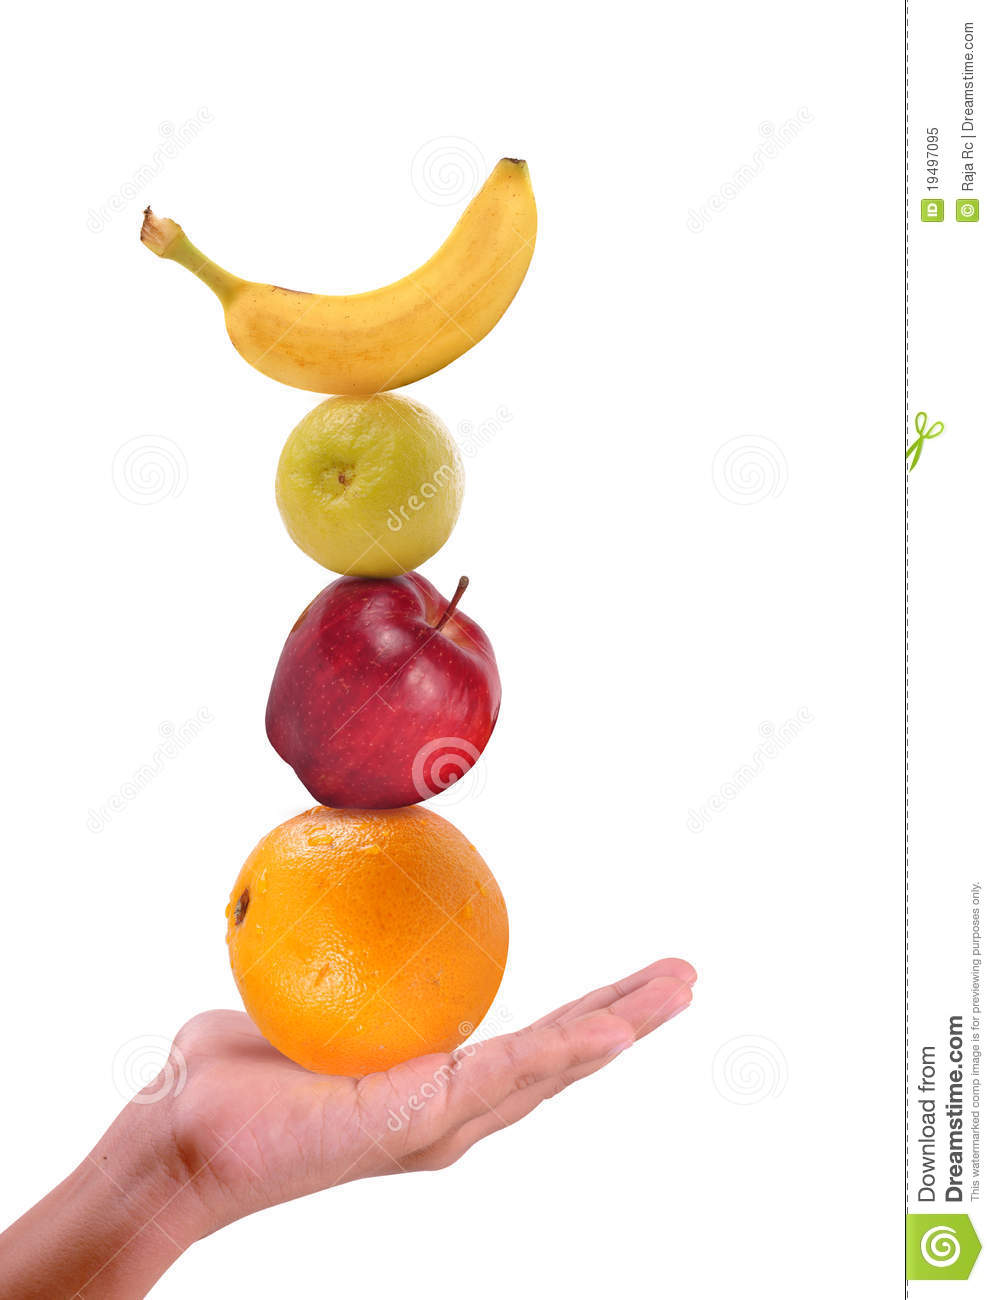 Fruits in hand